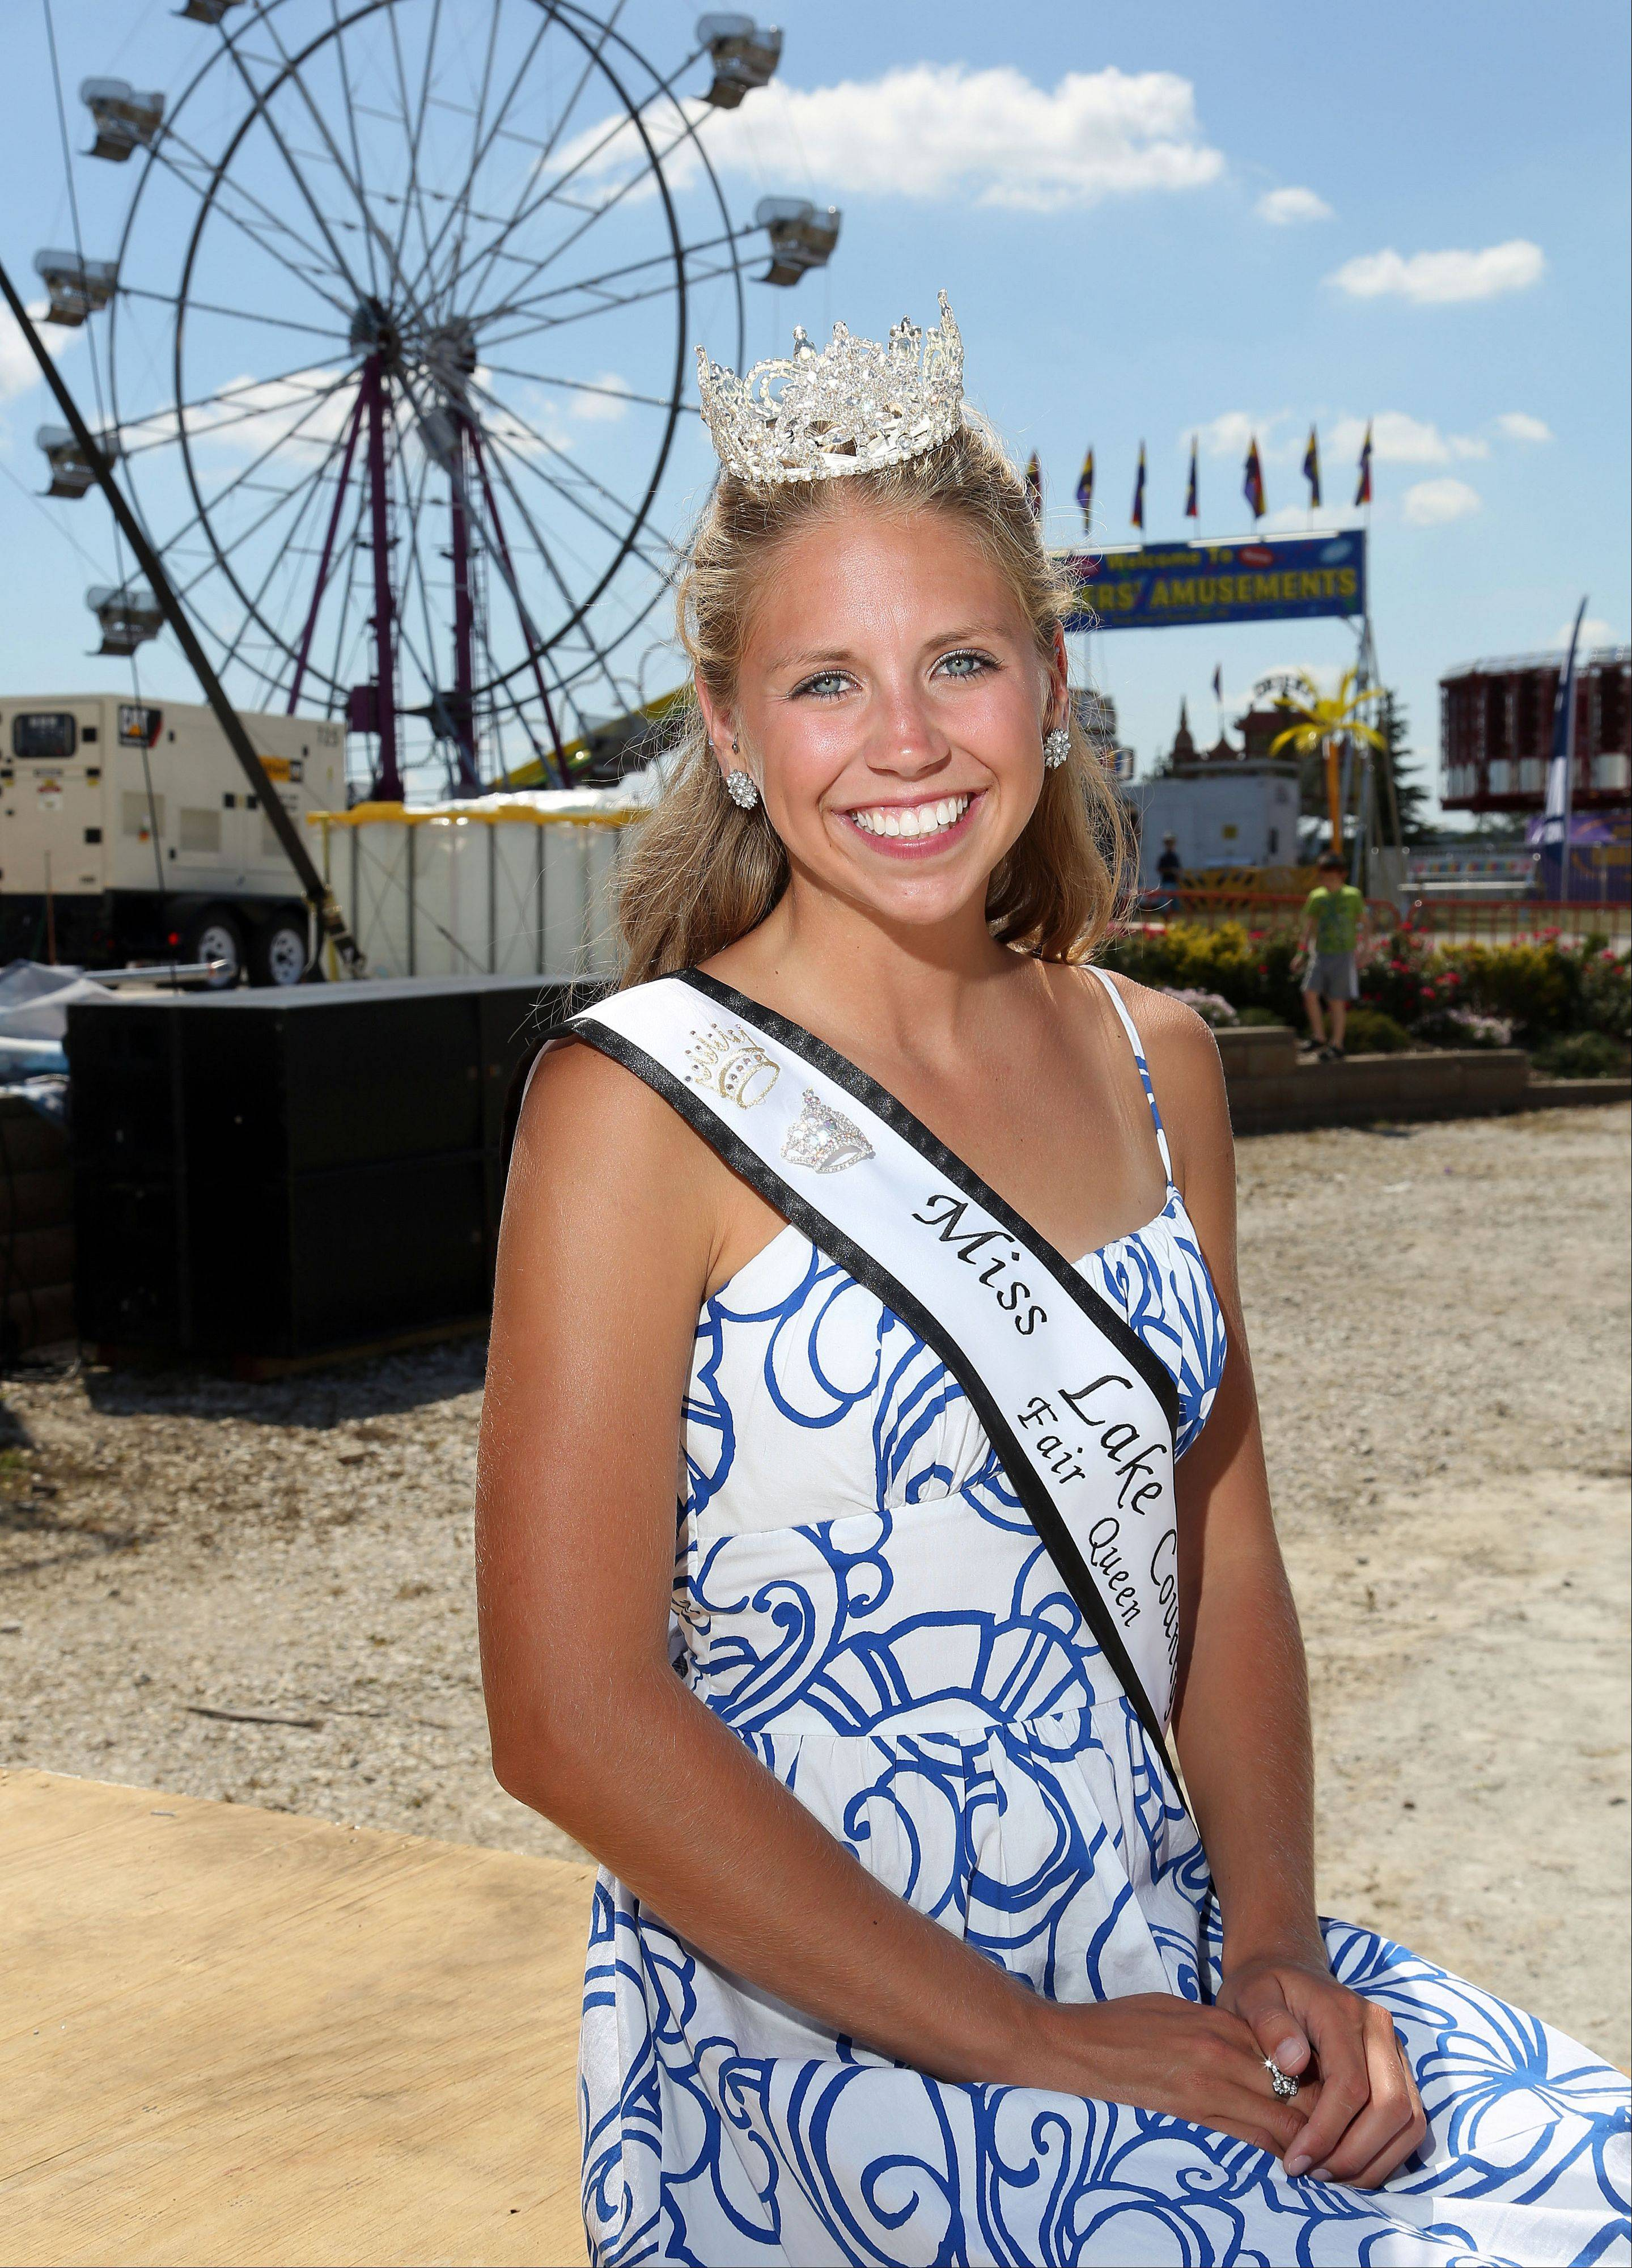 Meghan Opolka of Antioch is the 2013 Miss Lake County Fair Queen.